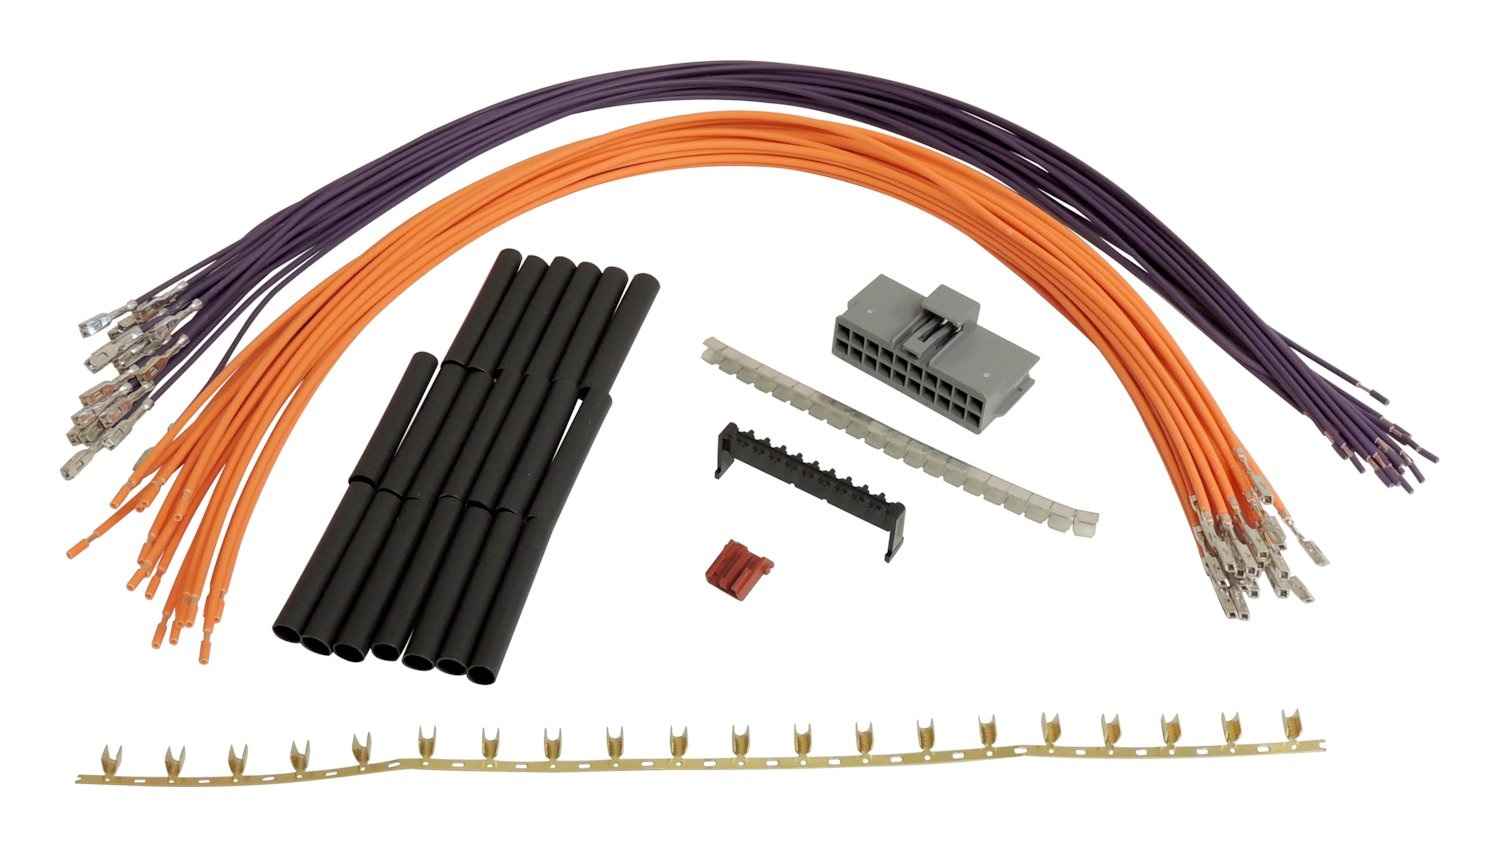 Wire Harness Repair Tubing Simple Wiring Diagram Automotive Supplies Kits Clamps Crown 5183442aa Cas5183442aa